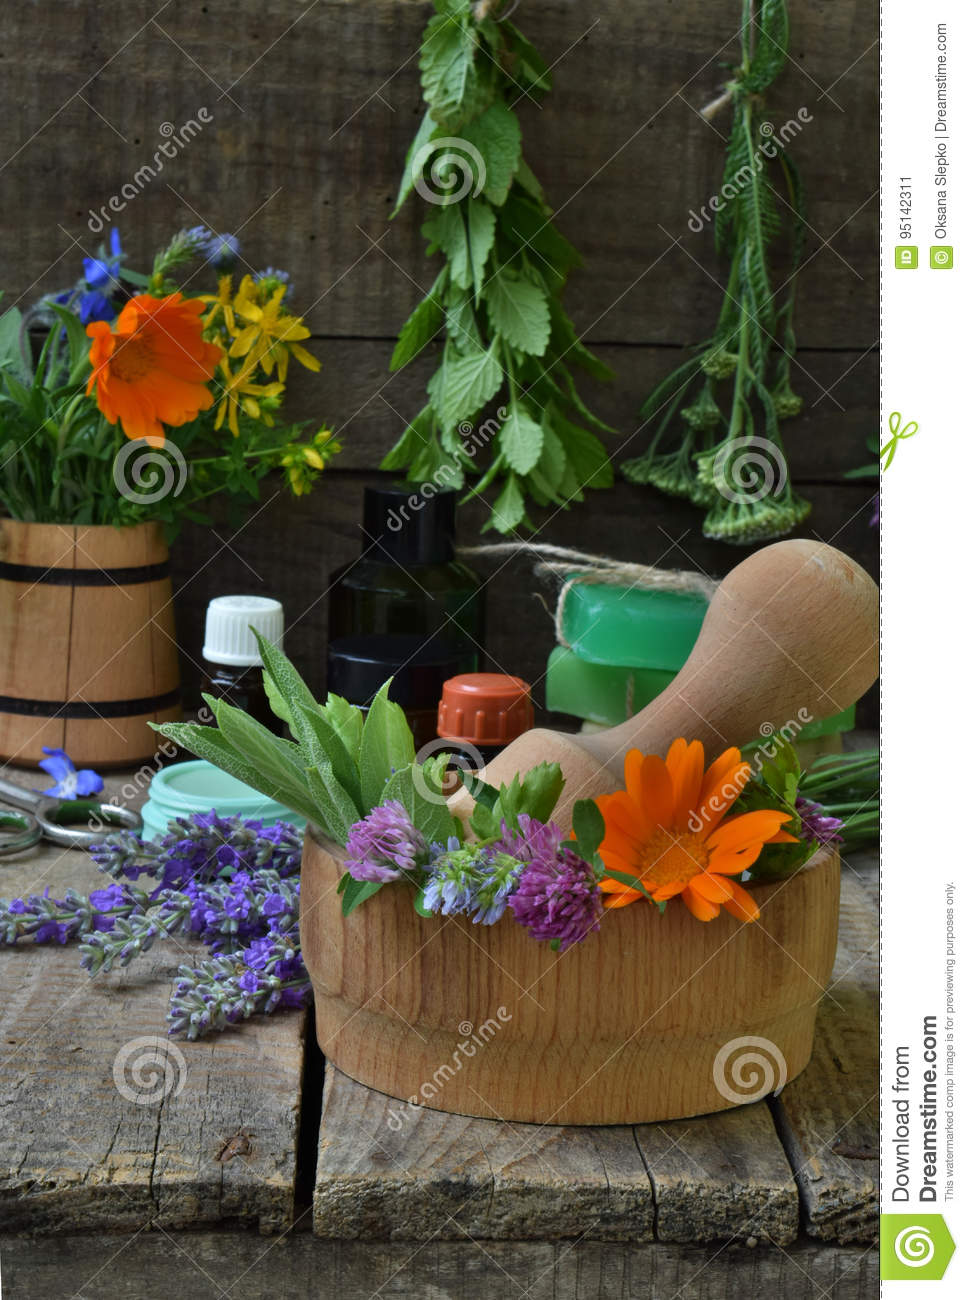 Composition of fresh herbs and flower used in natural alternative medicine or cosmetology for preparation of cosmetics, cream, soa